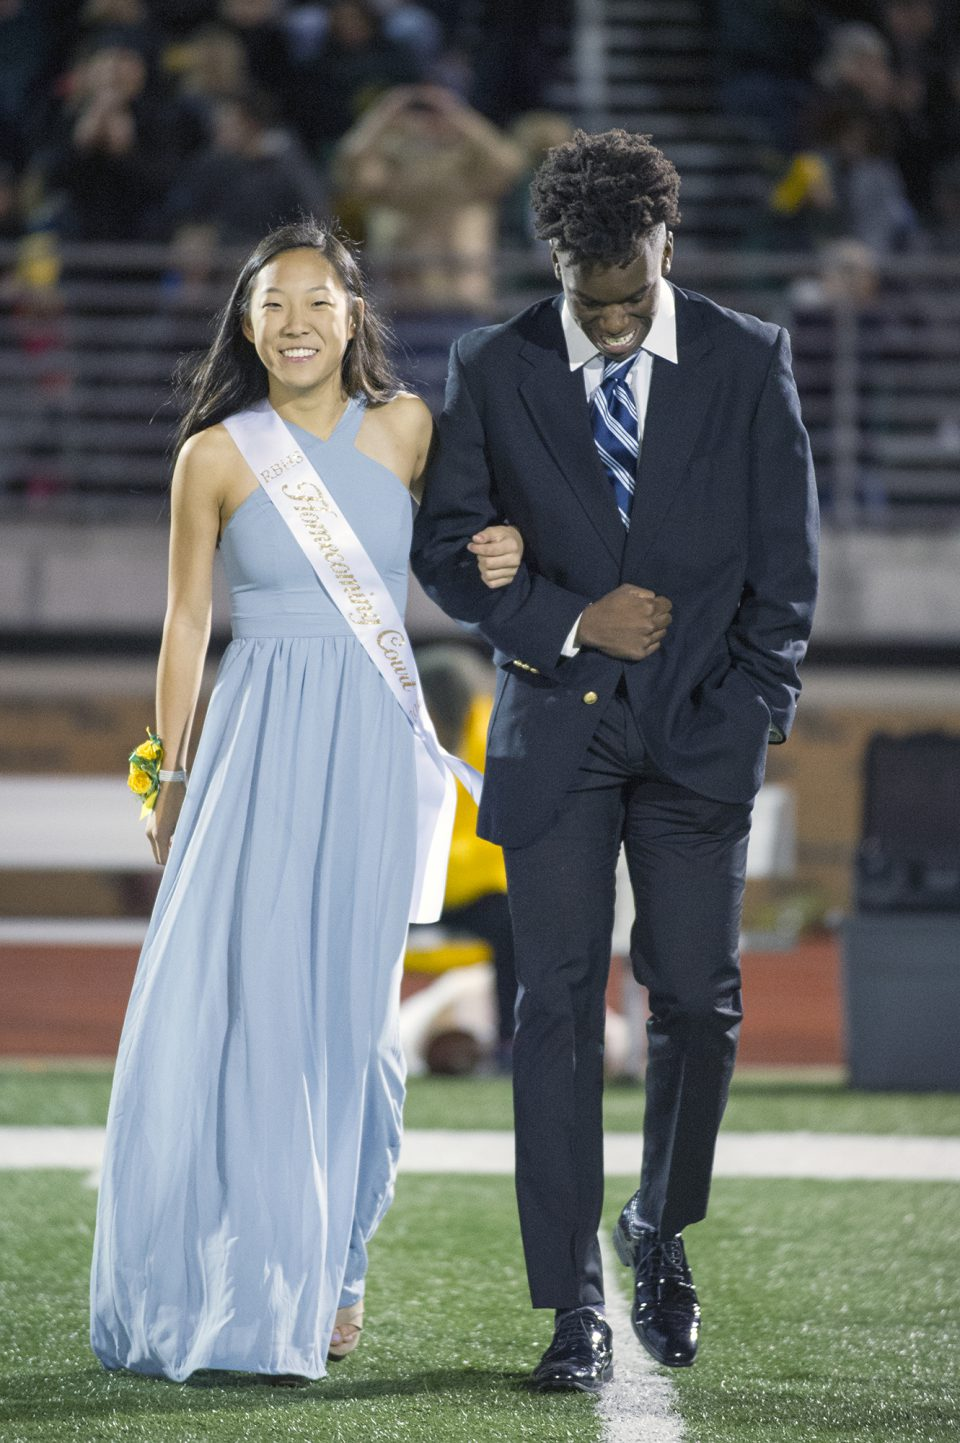 Homecoming queen candidate Ji-Sung Lee and escort  Mojuba Shonekan. Photo by Maya Bell.